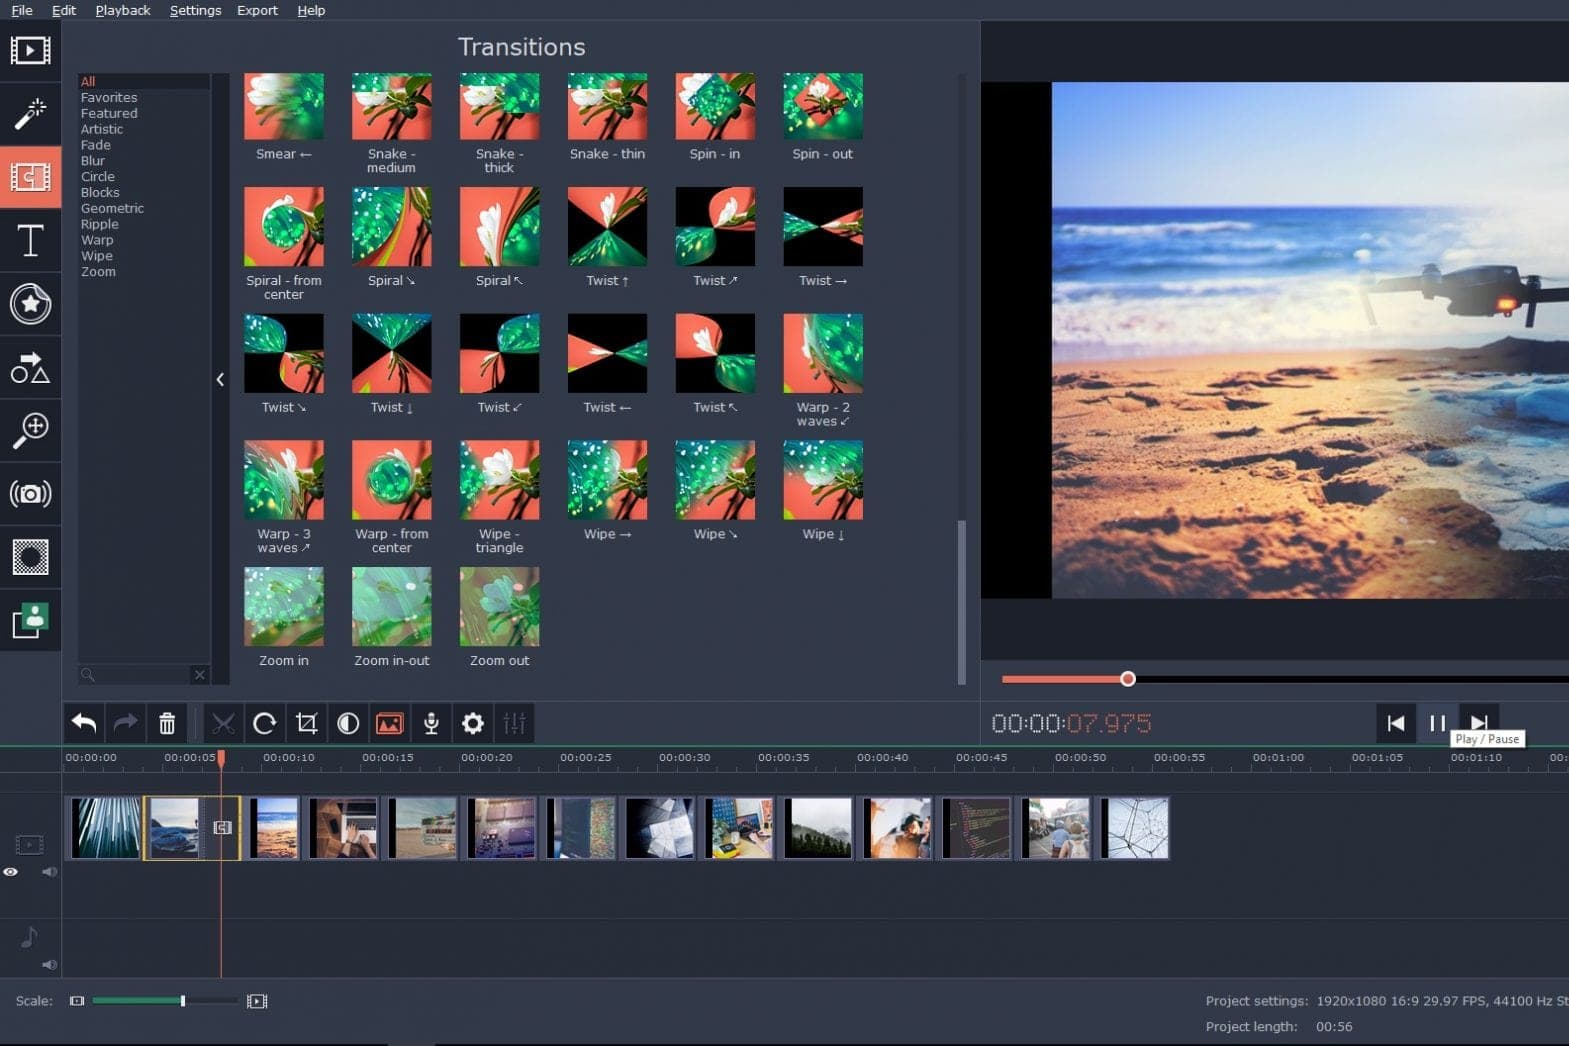 Portfolio for Video Editor and Sound amplification